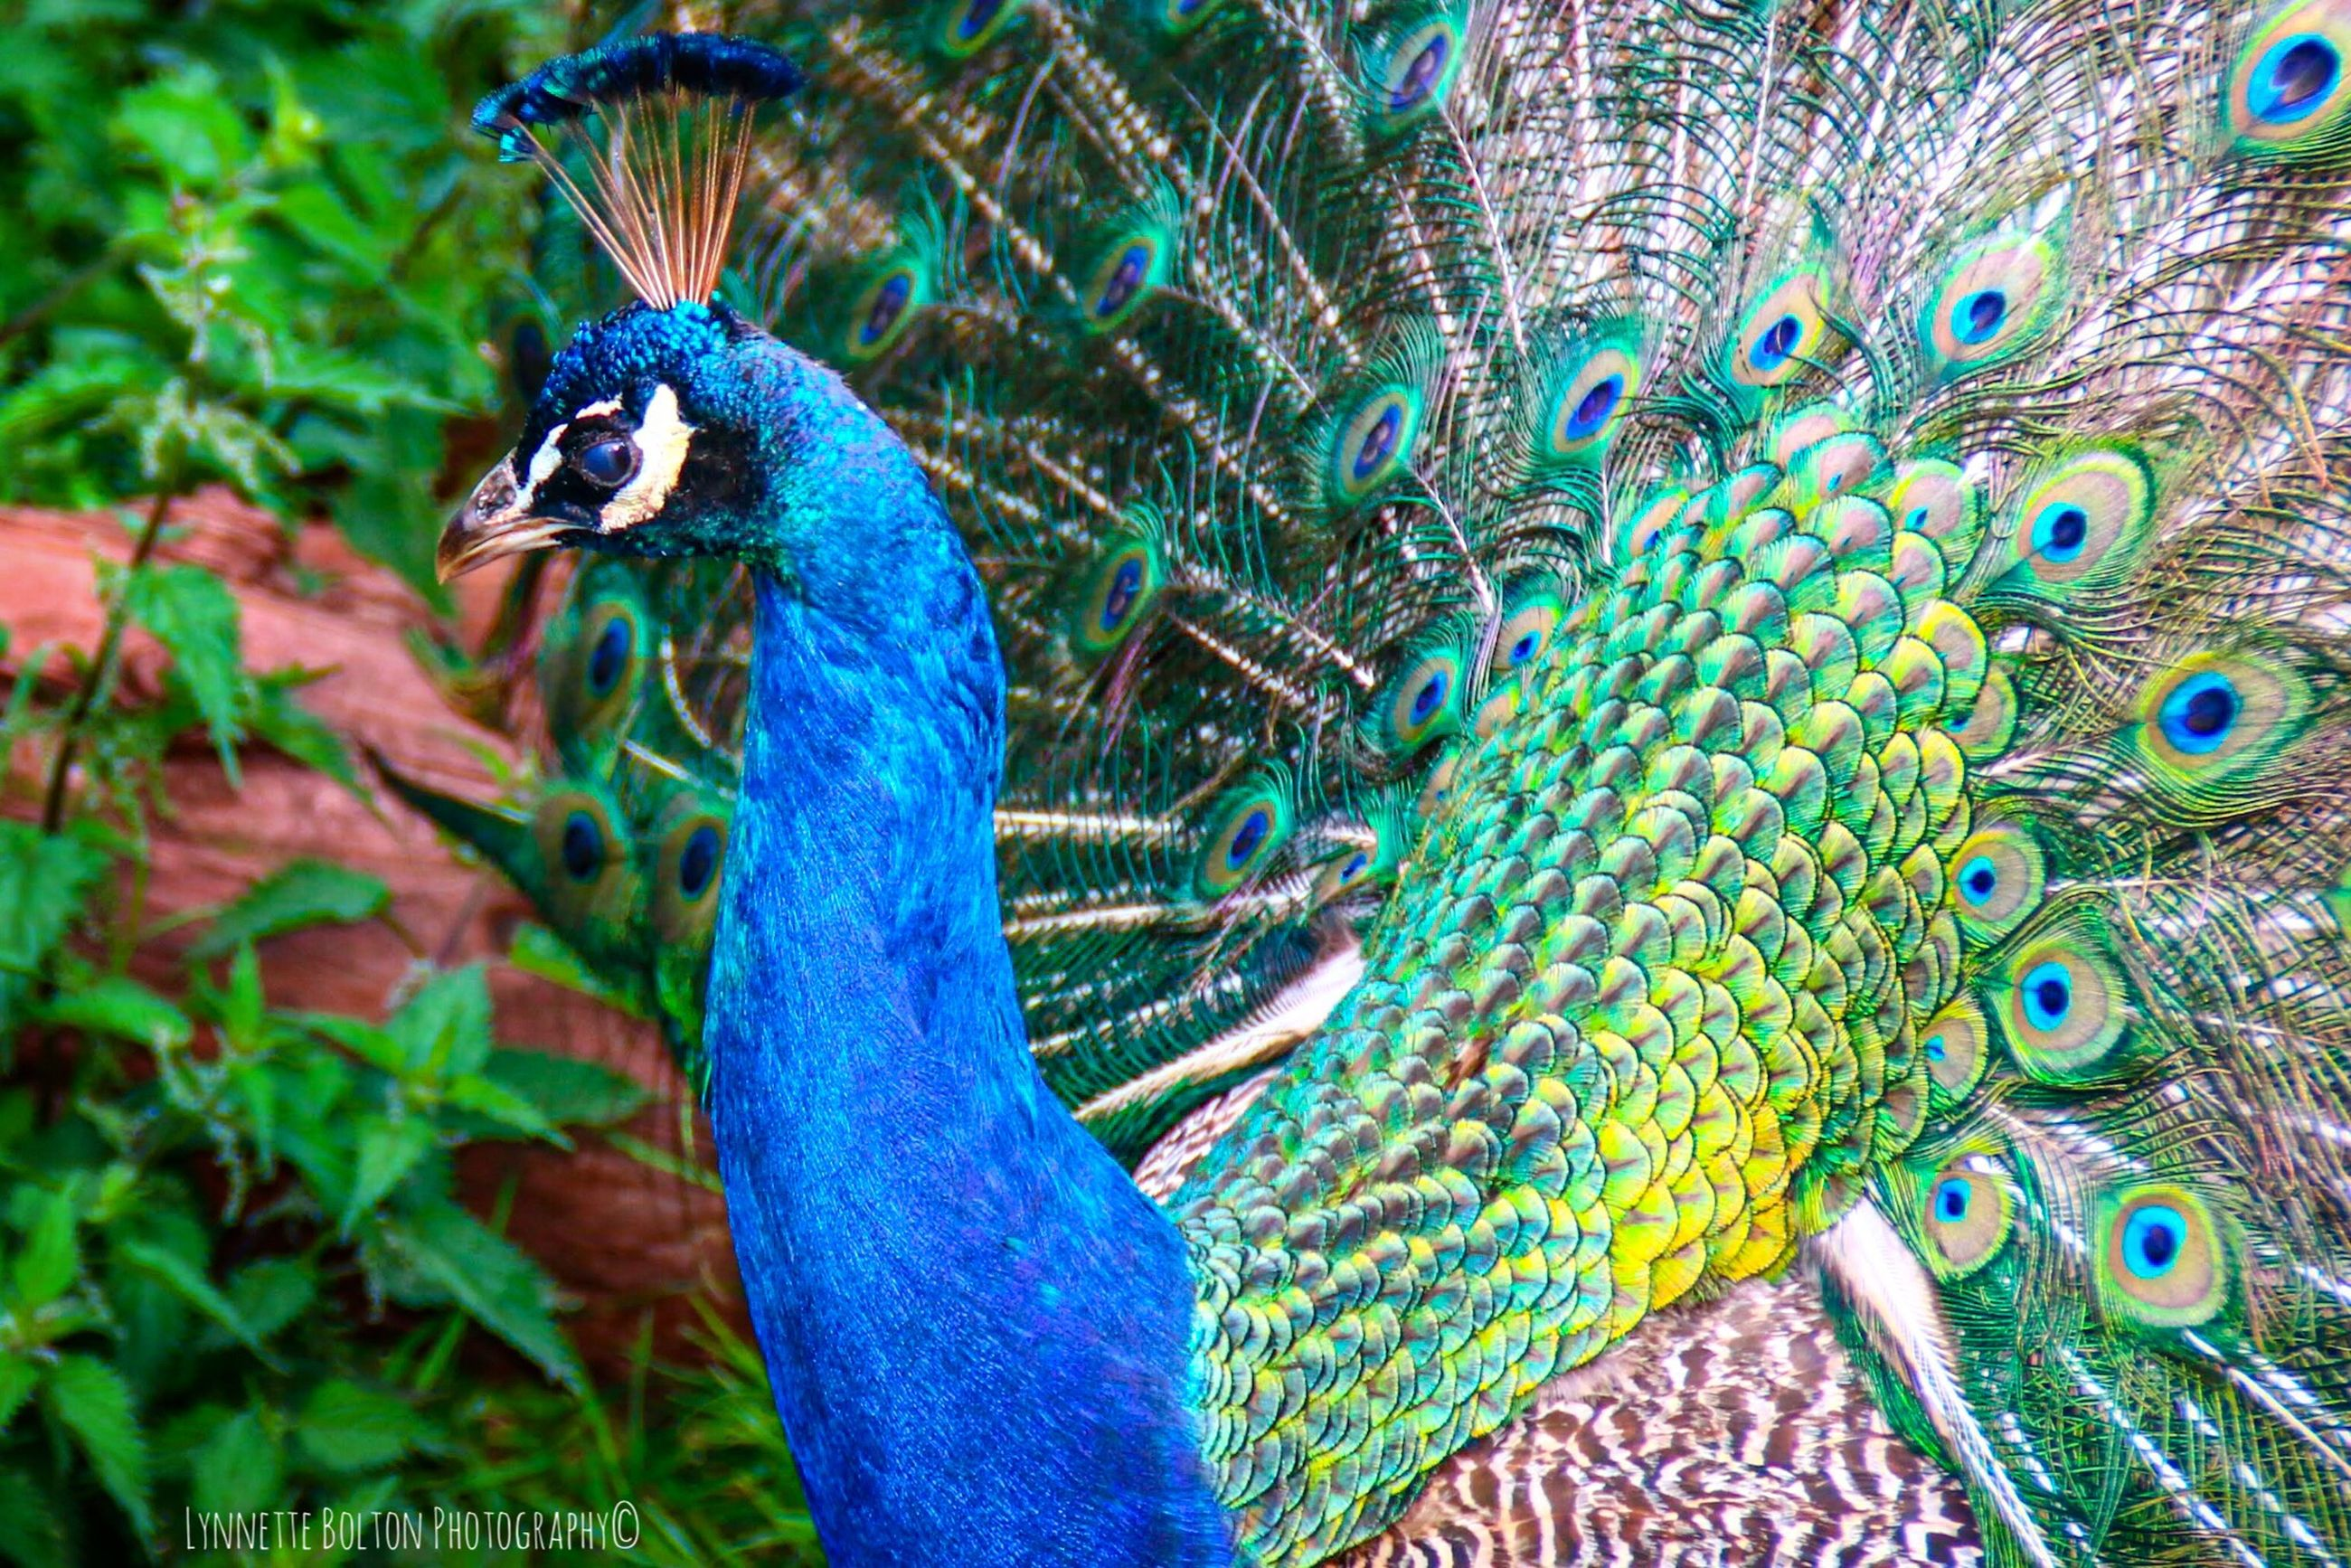 peacock, bird, animal themes, animal, one animal, animal wildlife, vertebrate, peacock feather, animals in the wild, blue, feather, male animal, multi colored, no people, fanned out, beauty in nature, close-up, nature, day, animal body part, outdoors, animal head